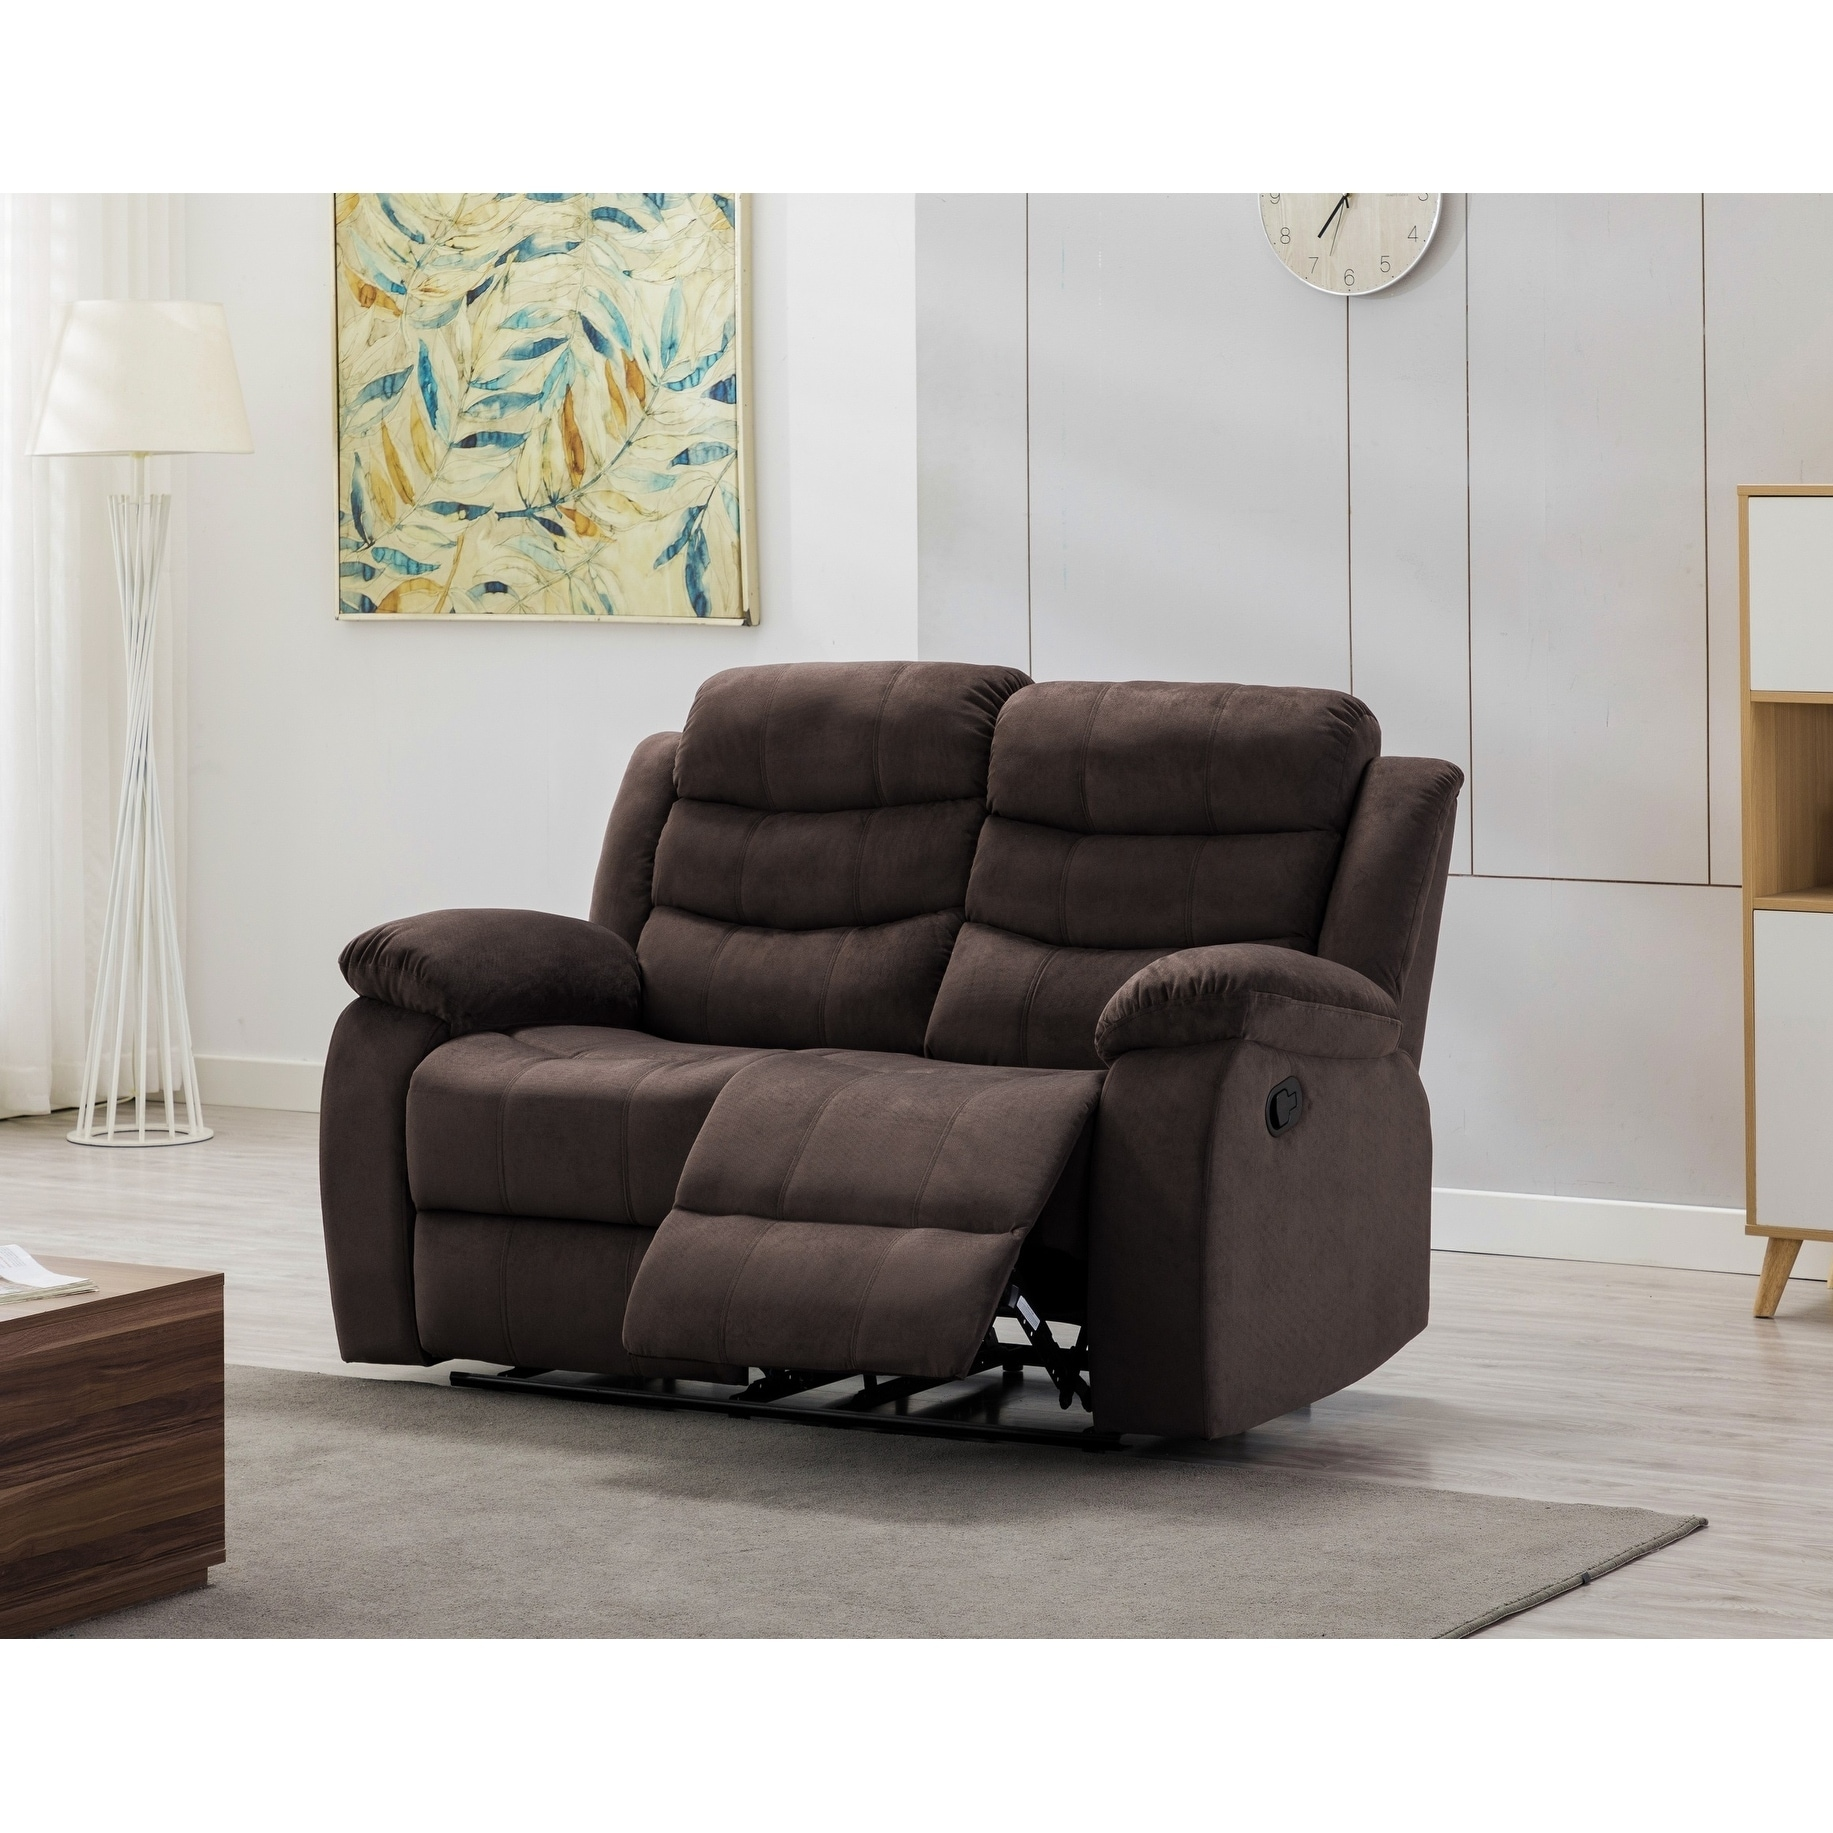 Astonishing Harper Reclining Loveseat By Container Furniture Unemploymentrelief Wooden Chair Designs For Living Room Unemploymentrelieforg